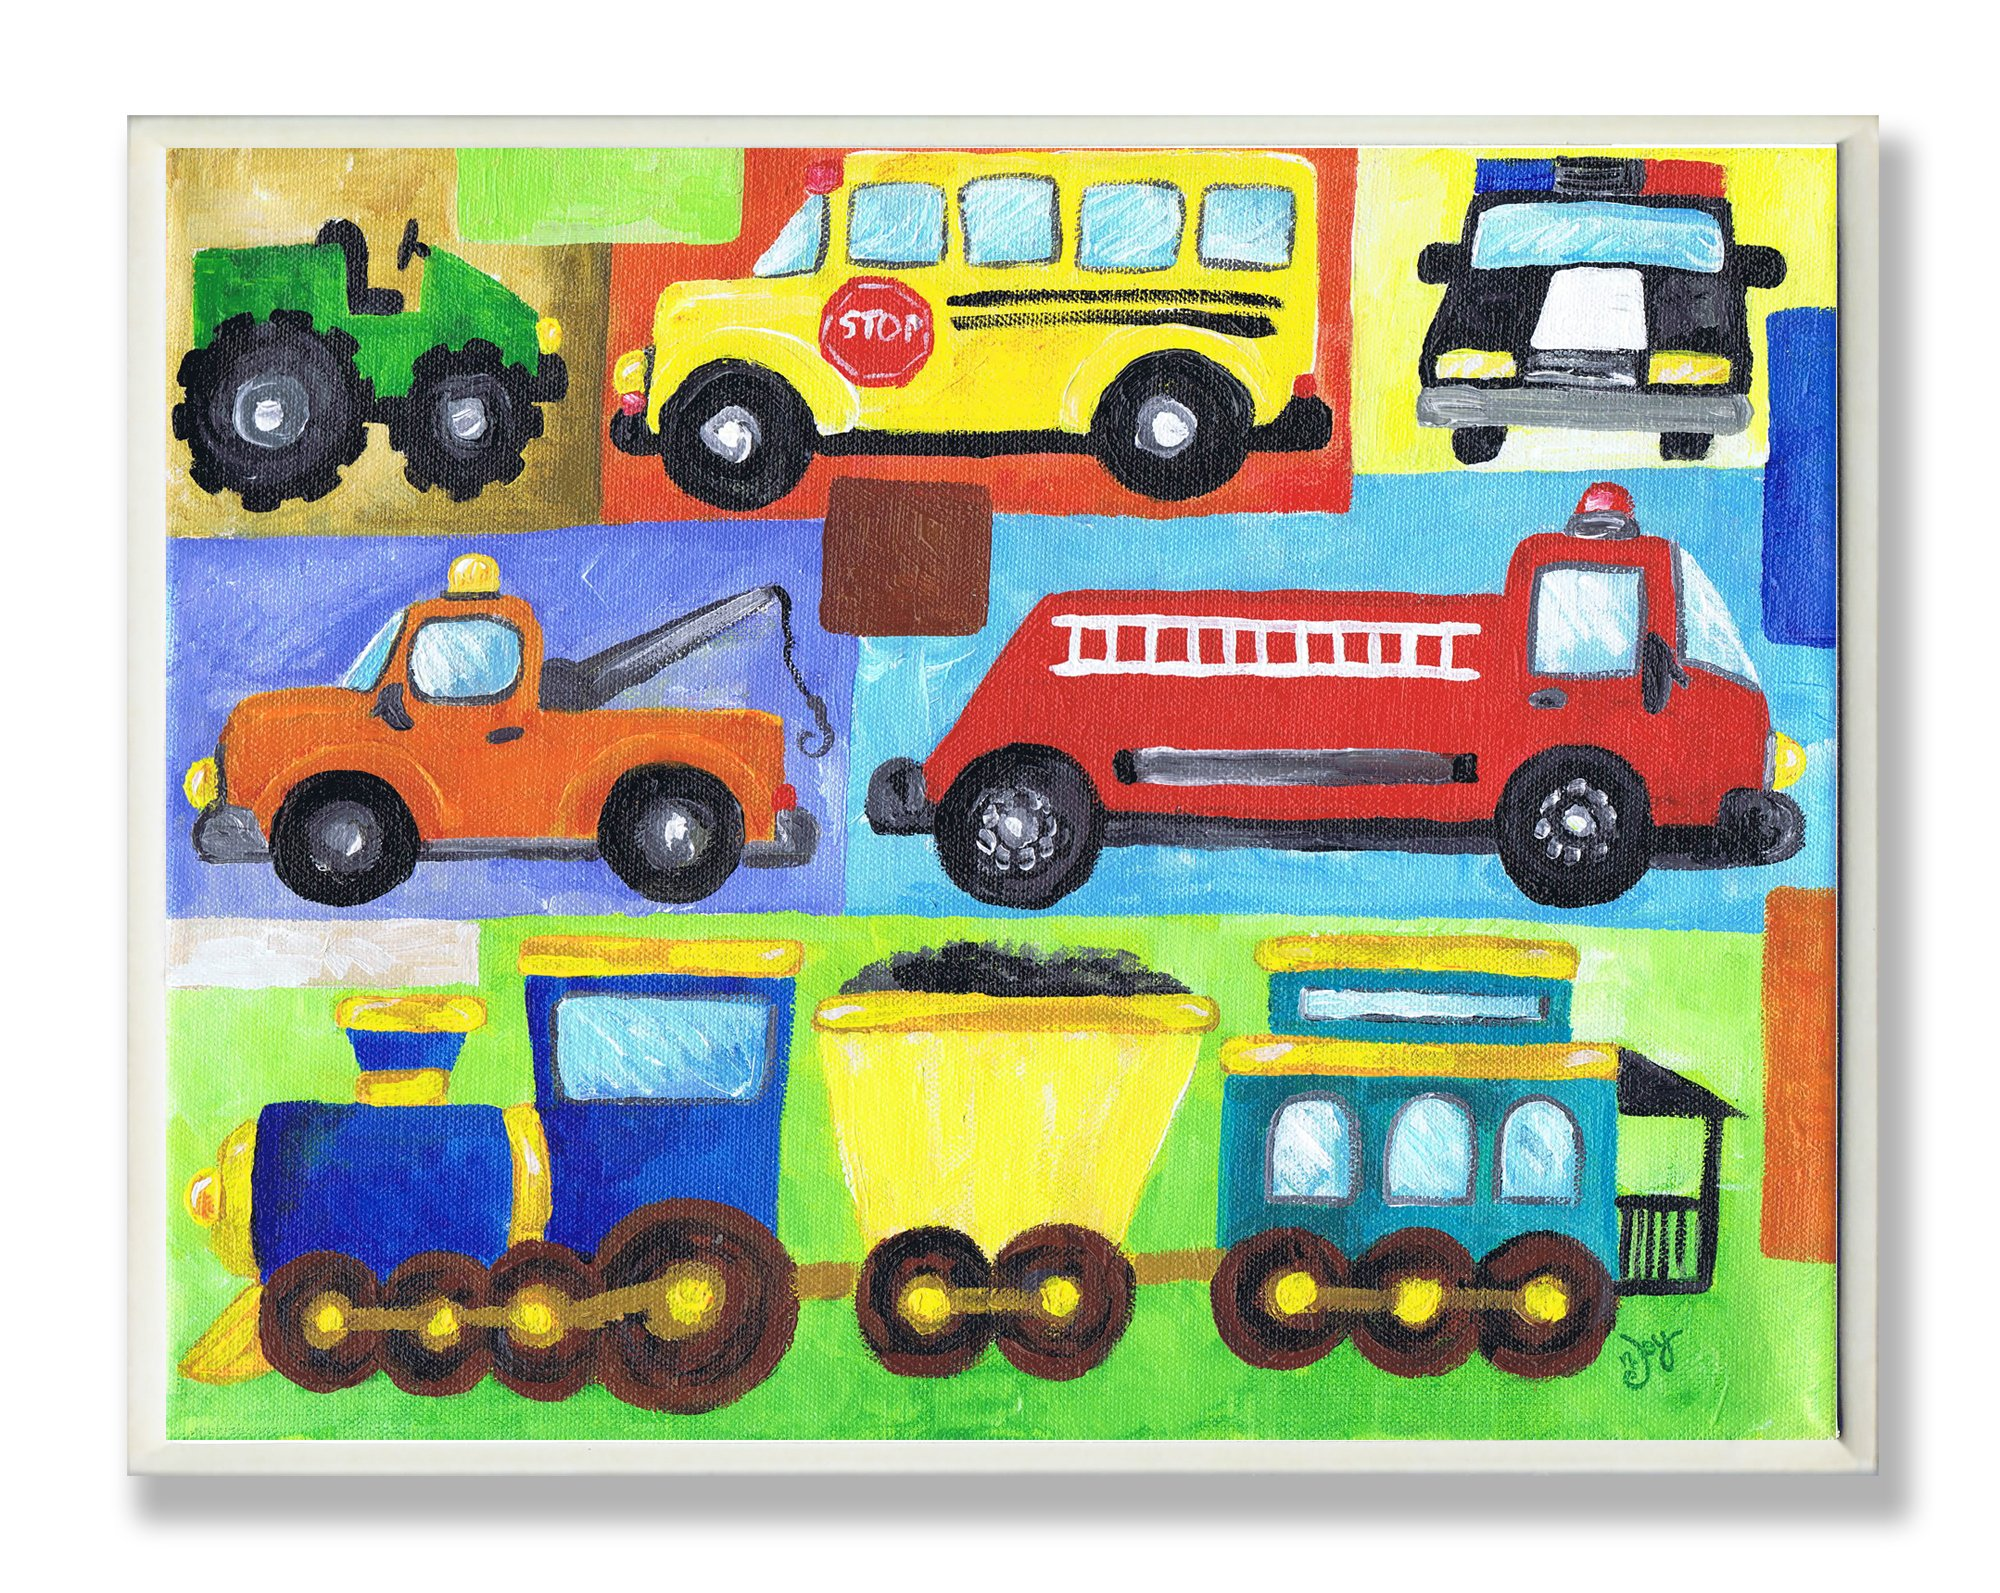 The Kids Room by Stupell Transportation Collage Oversized Rectangle Wall Plaque, 11 x 0.5 x 15, Proudly Made in USA